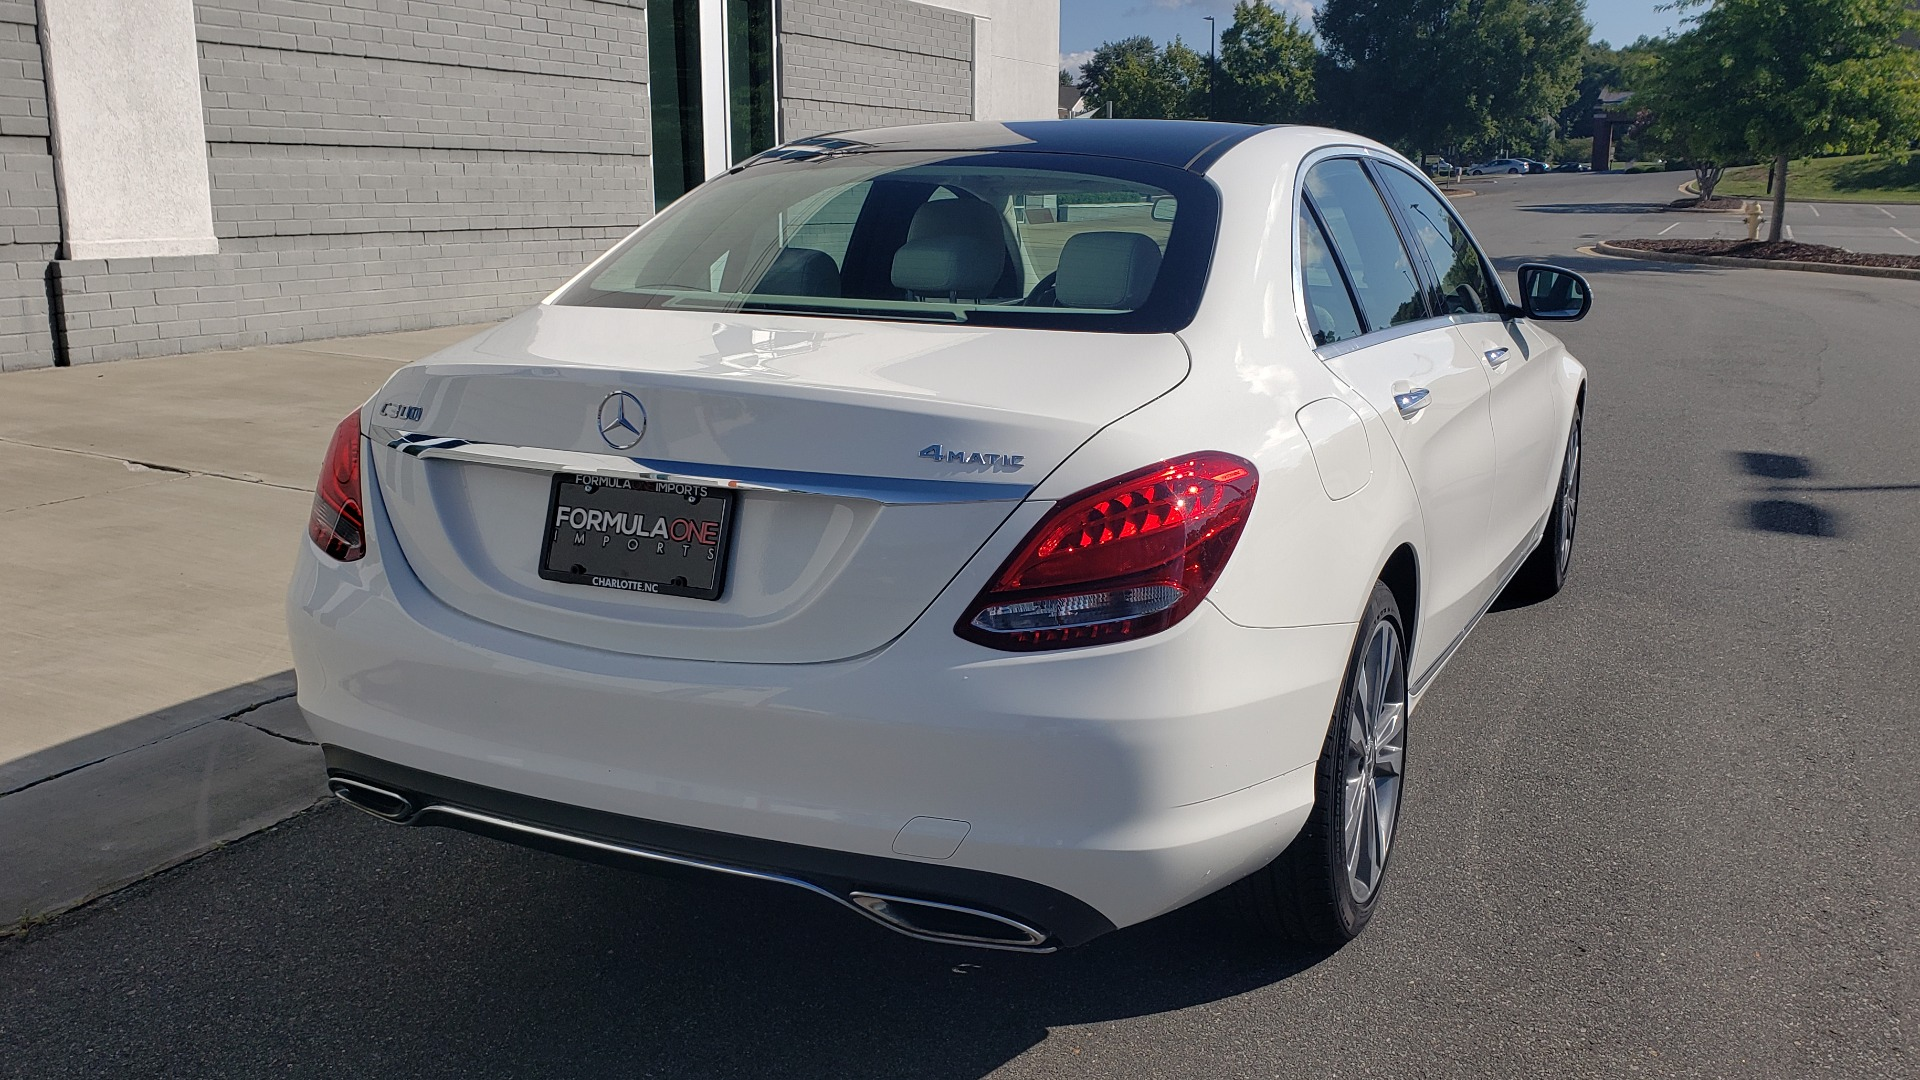 Used 2018 Mercedes-Benz C-Class C 300 4MATIC PREMIUM / APPLE CARPLAY / PANO-ROOF / REARVIEW for sale $33,795 at Formula Imports in Charlotte NC 28227 9